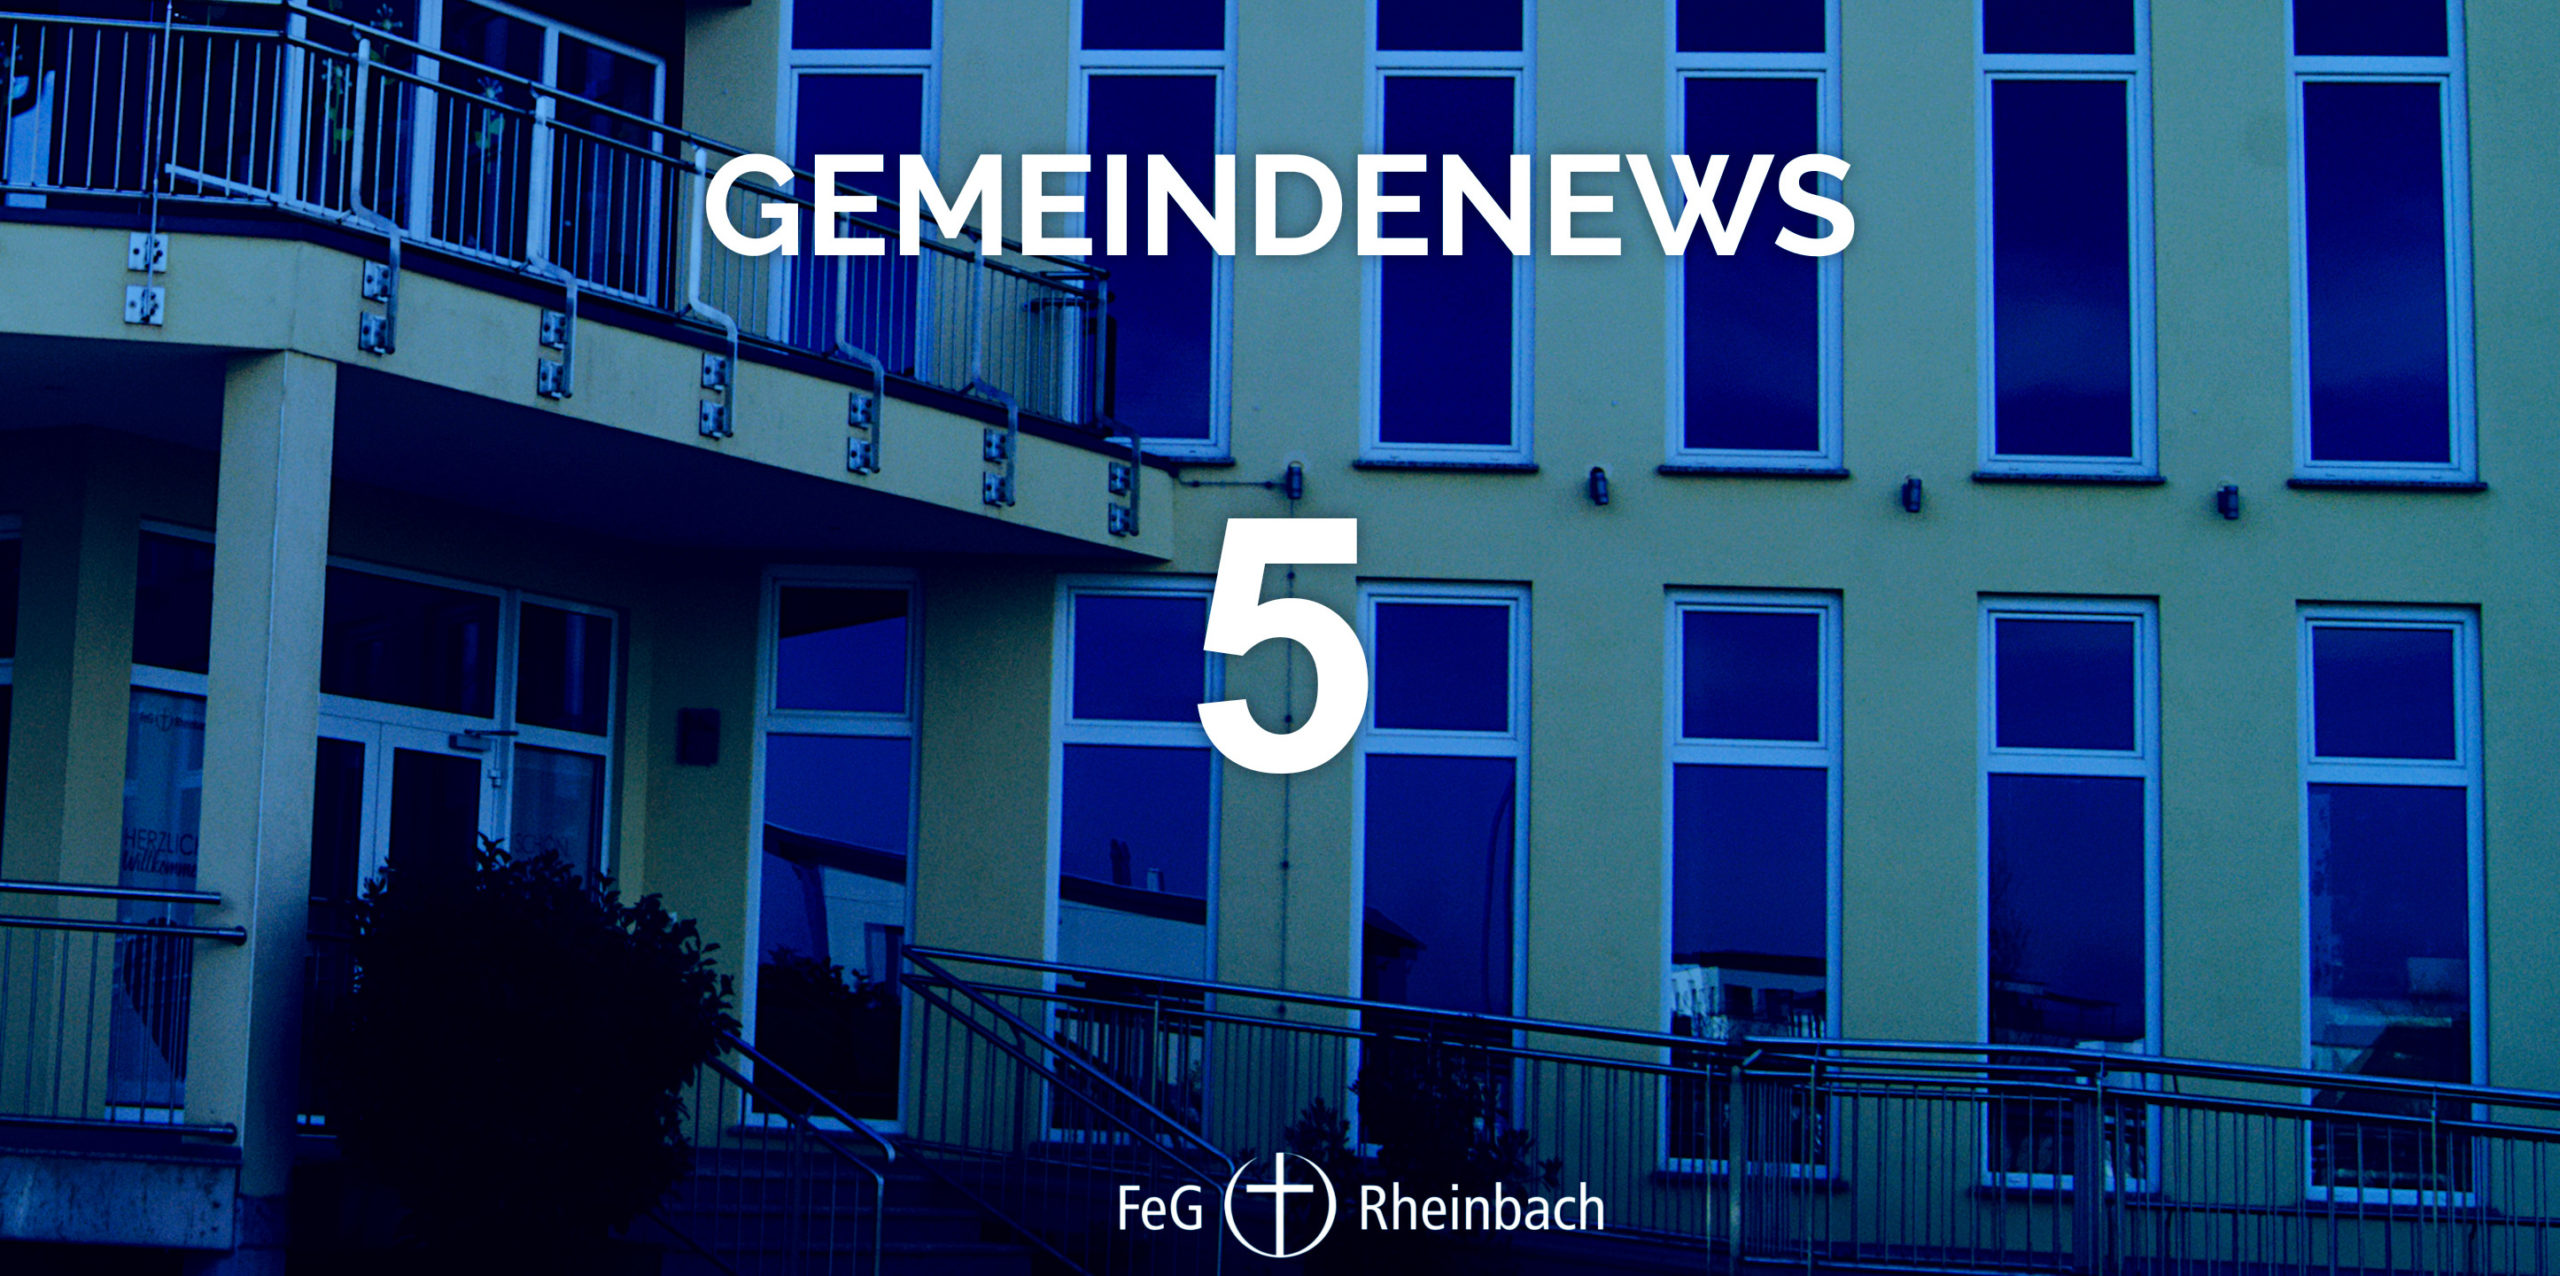 You are currently viewing Gemeindenews 5